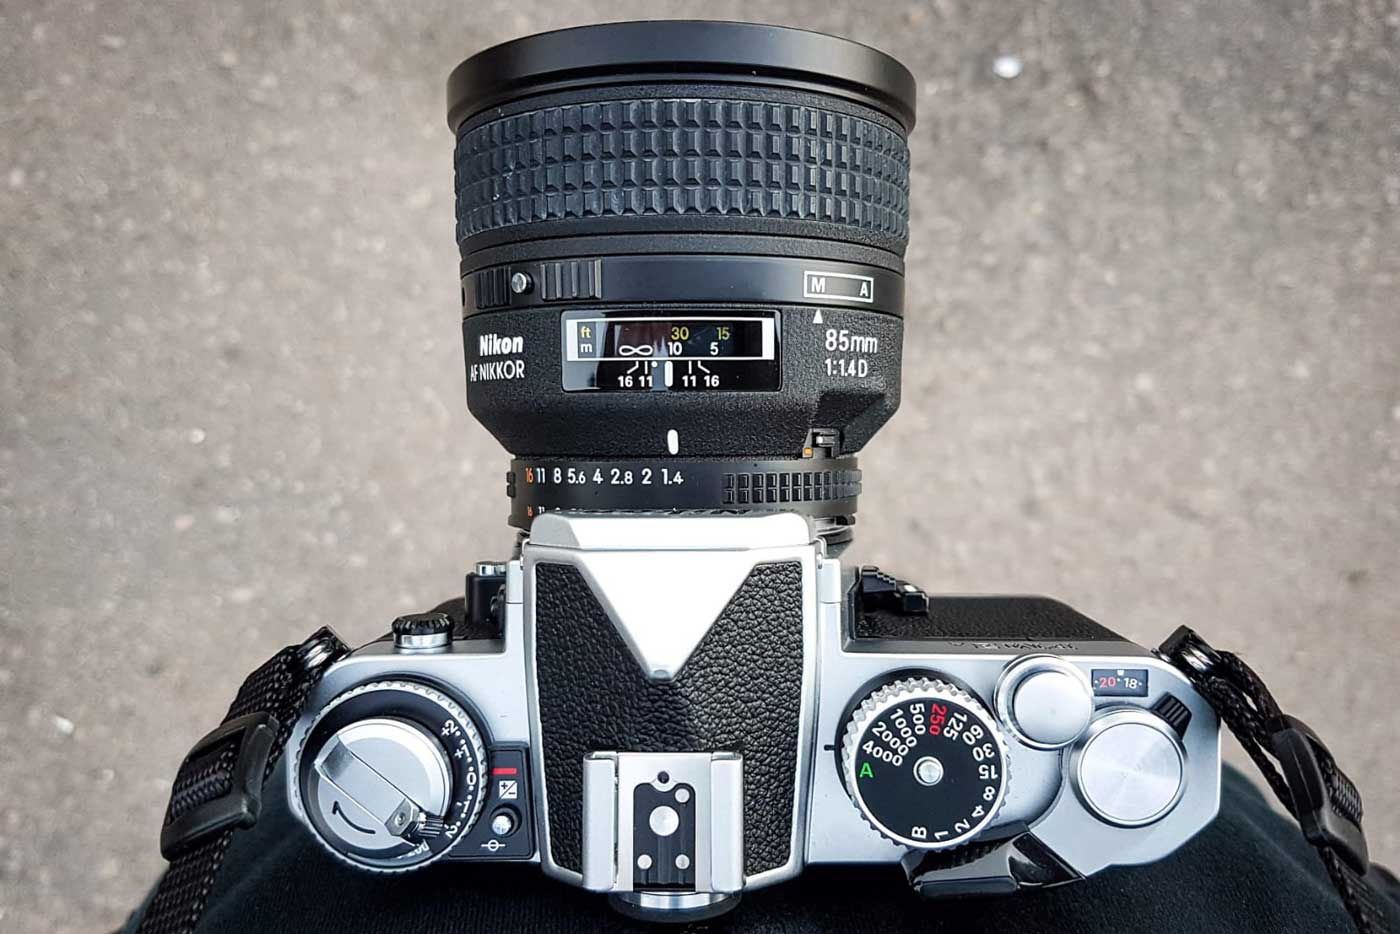 10-tips-buying-second-hand-used-pre-owned-film-camera-beginner-guide-check-detect-inspecting-working-properly-cameras-lenses-nikon-85mm-top-view